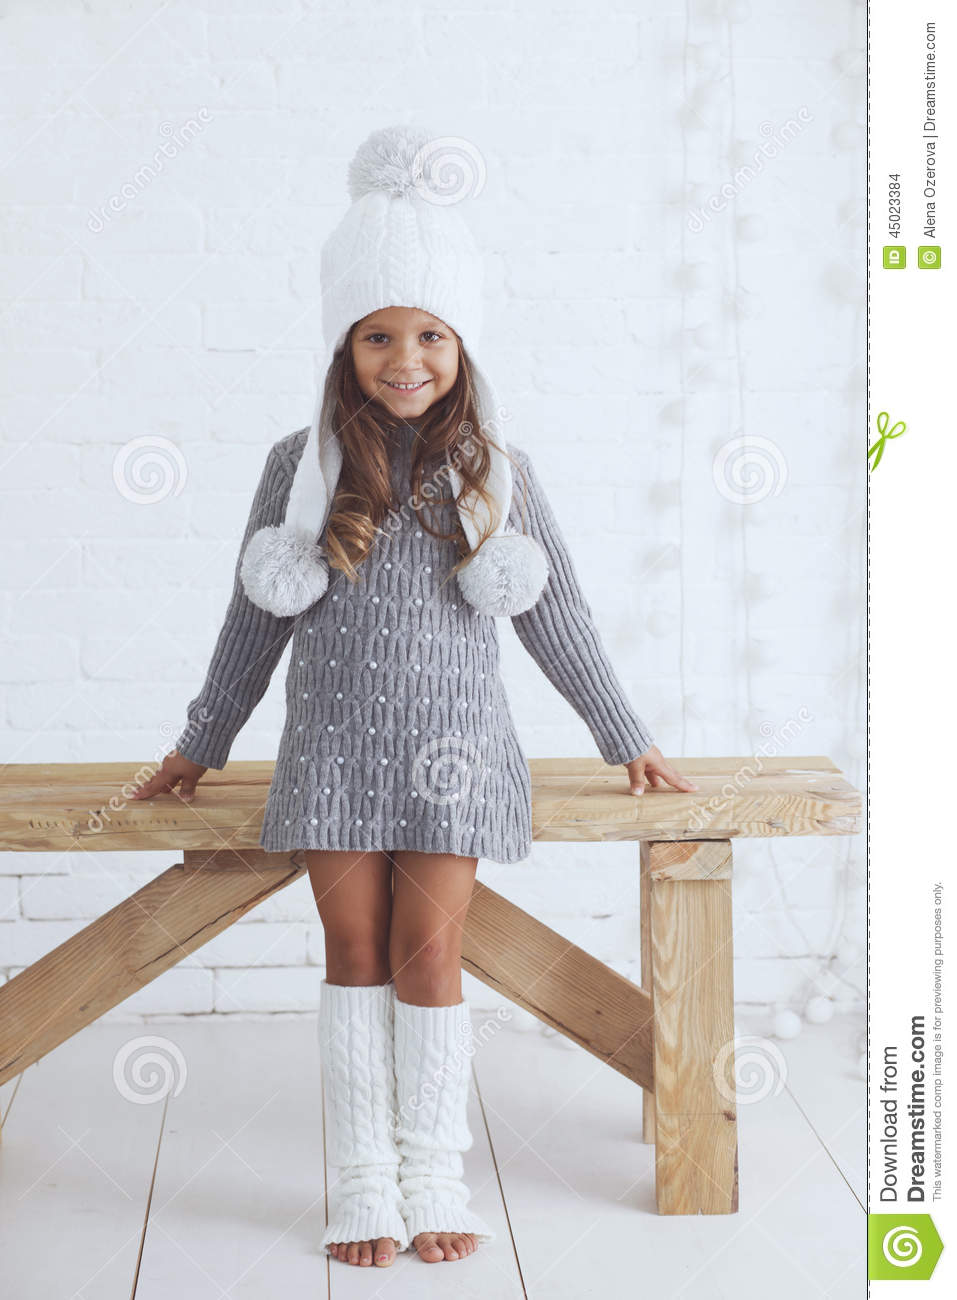 Fashion Little Girl Stock Photo Image Of Nordic Dress 45023384